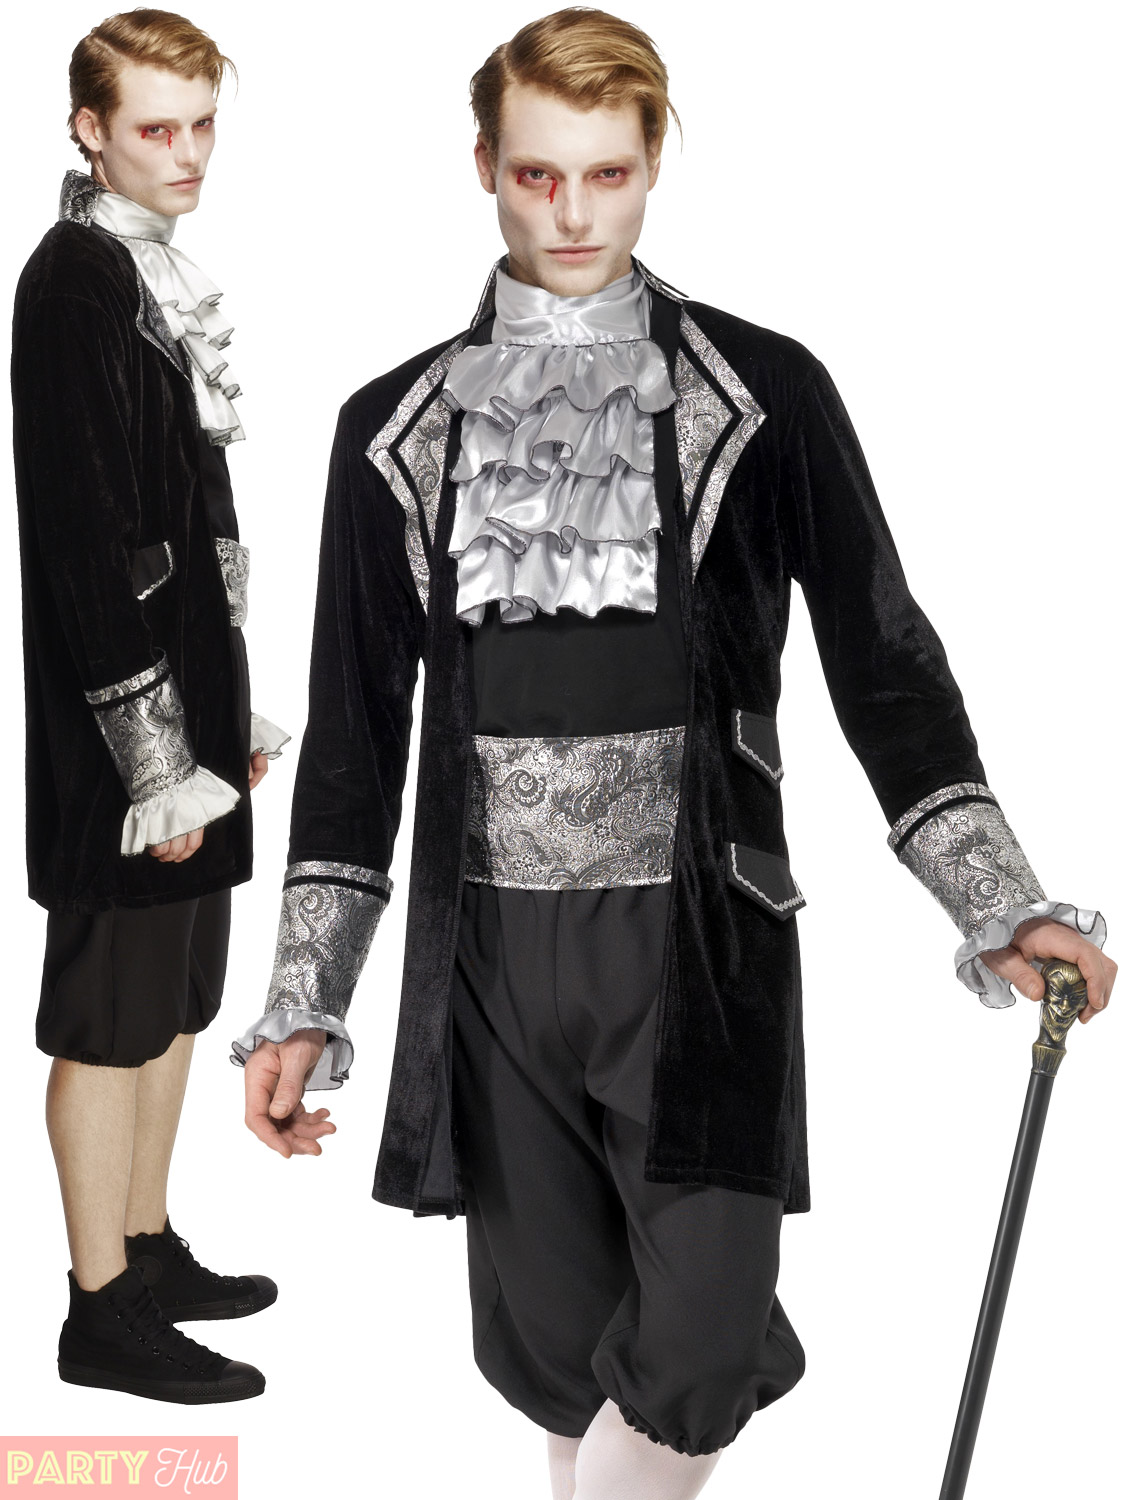 Mens-Fever-Baroque-Vampire-Costume-Adult-Masquerade-Halloween-Fancy-Dress-Outfit